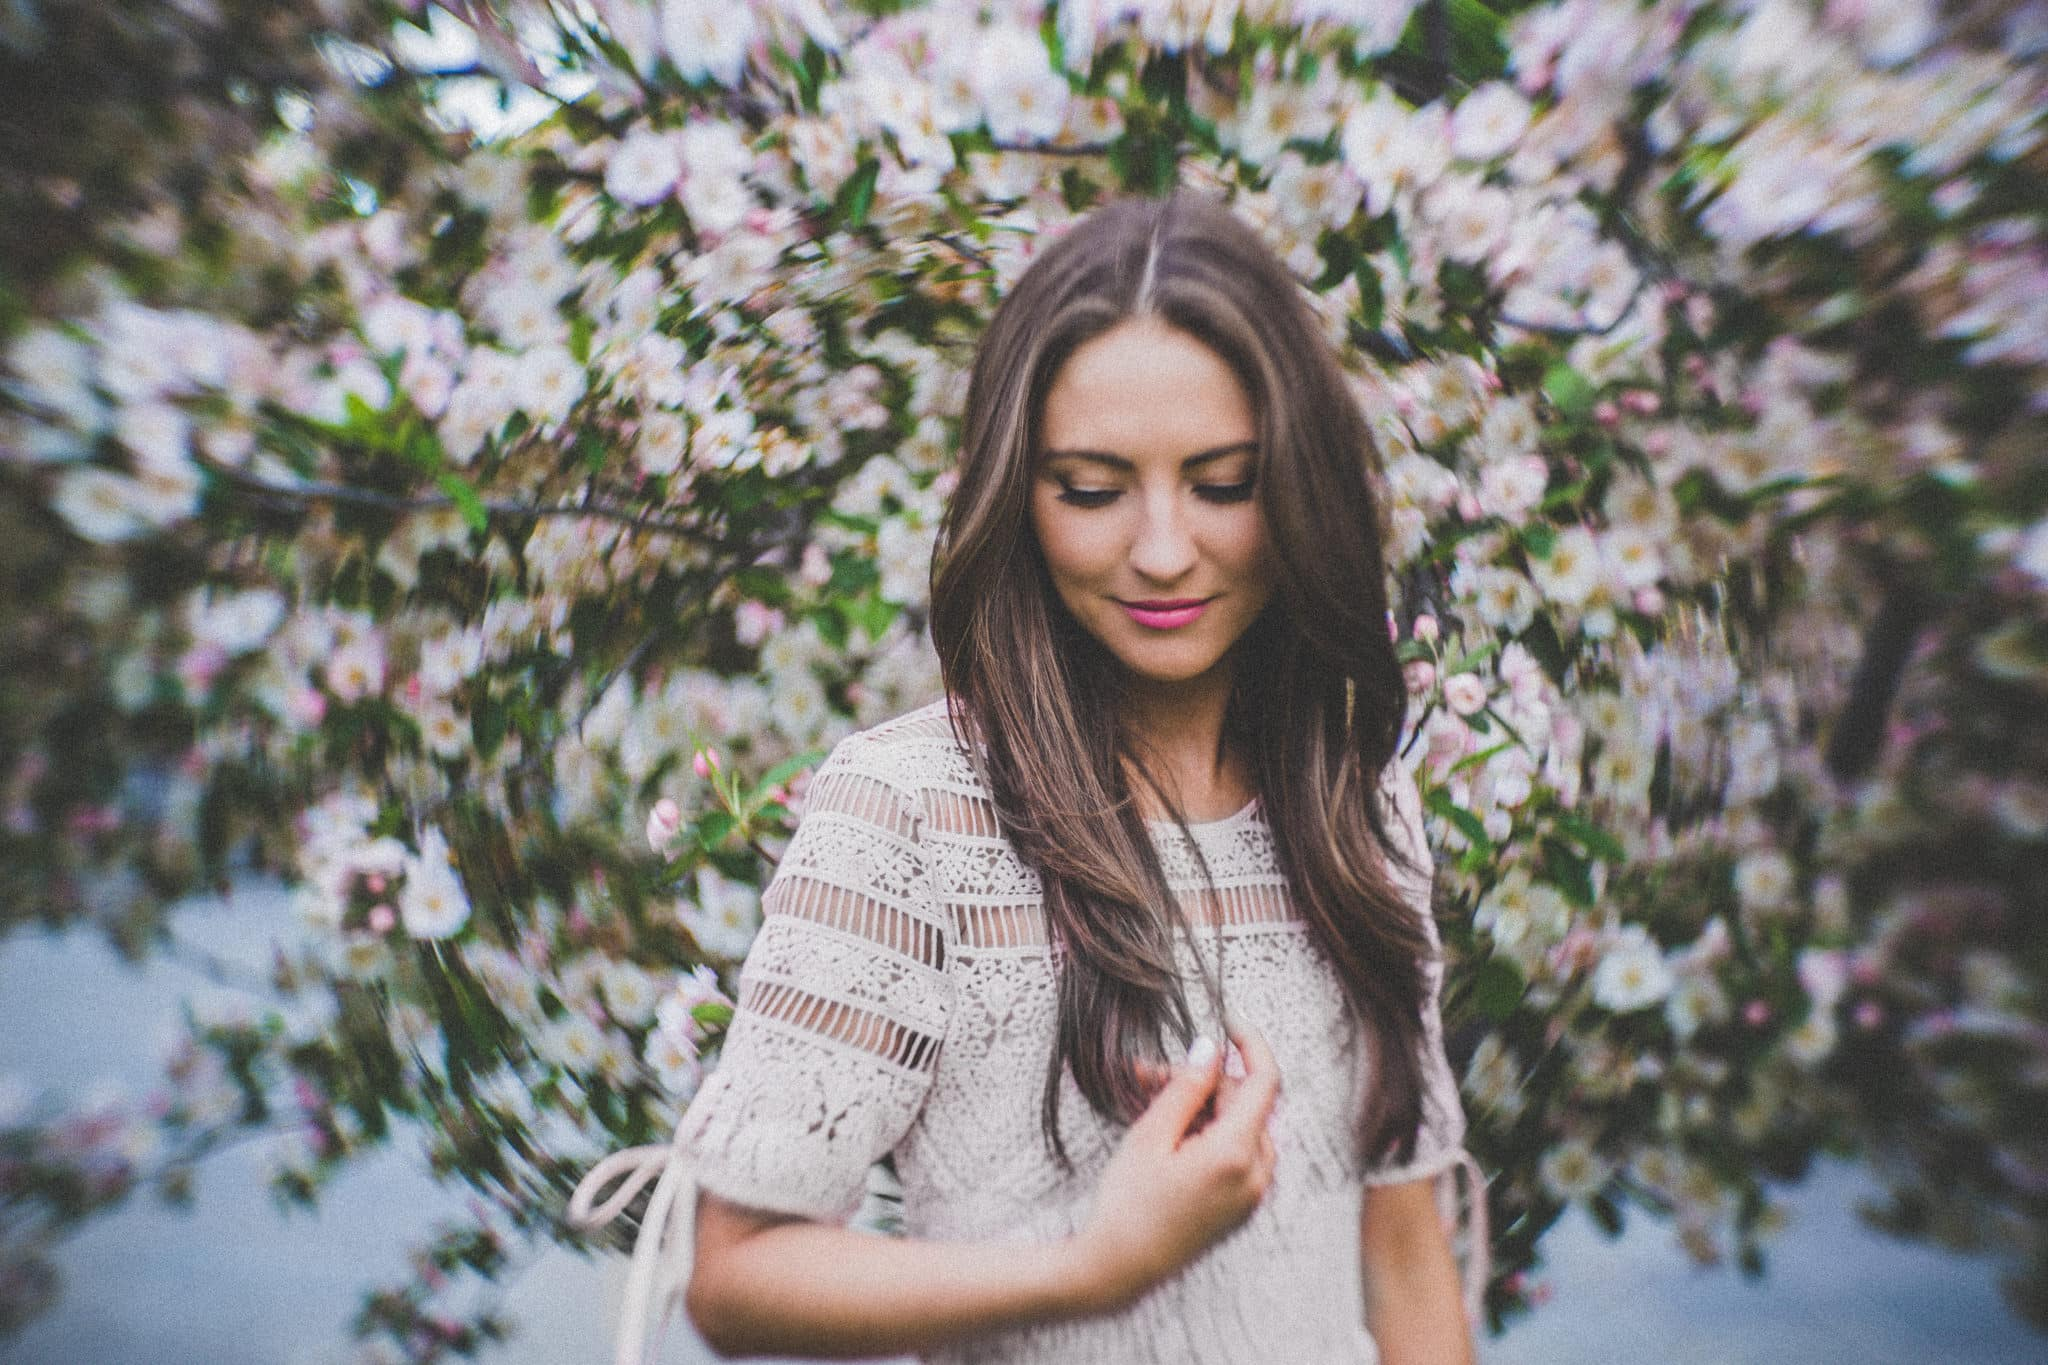 pretty girl with long hair infront of flowers in melbourne